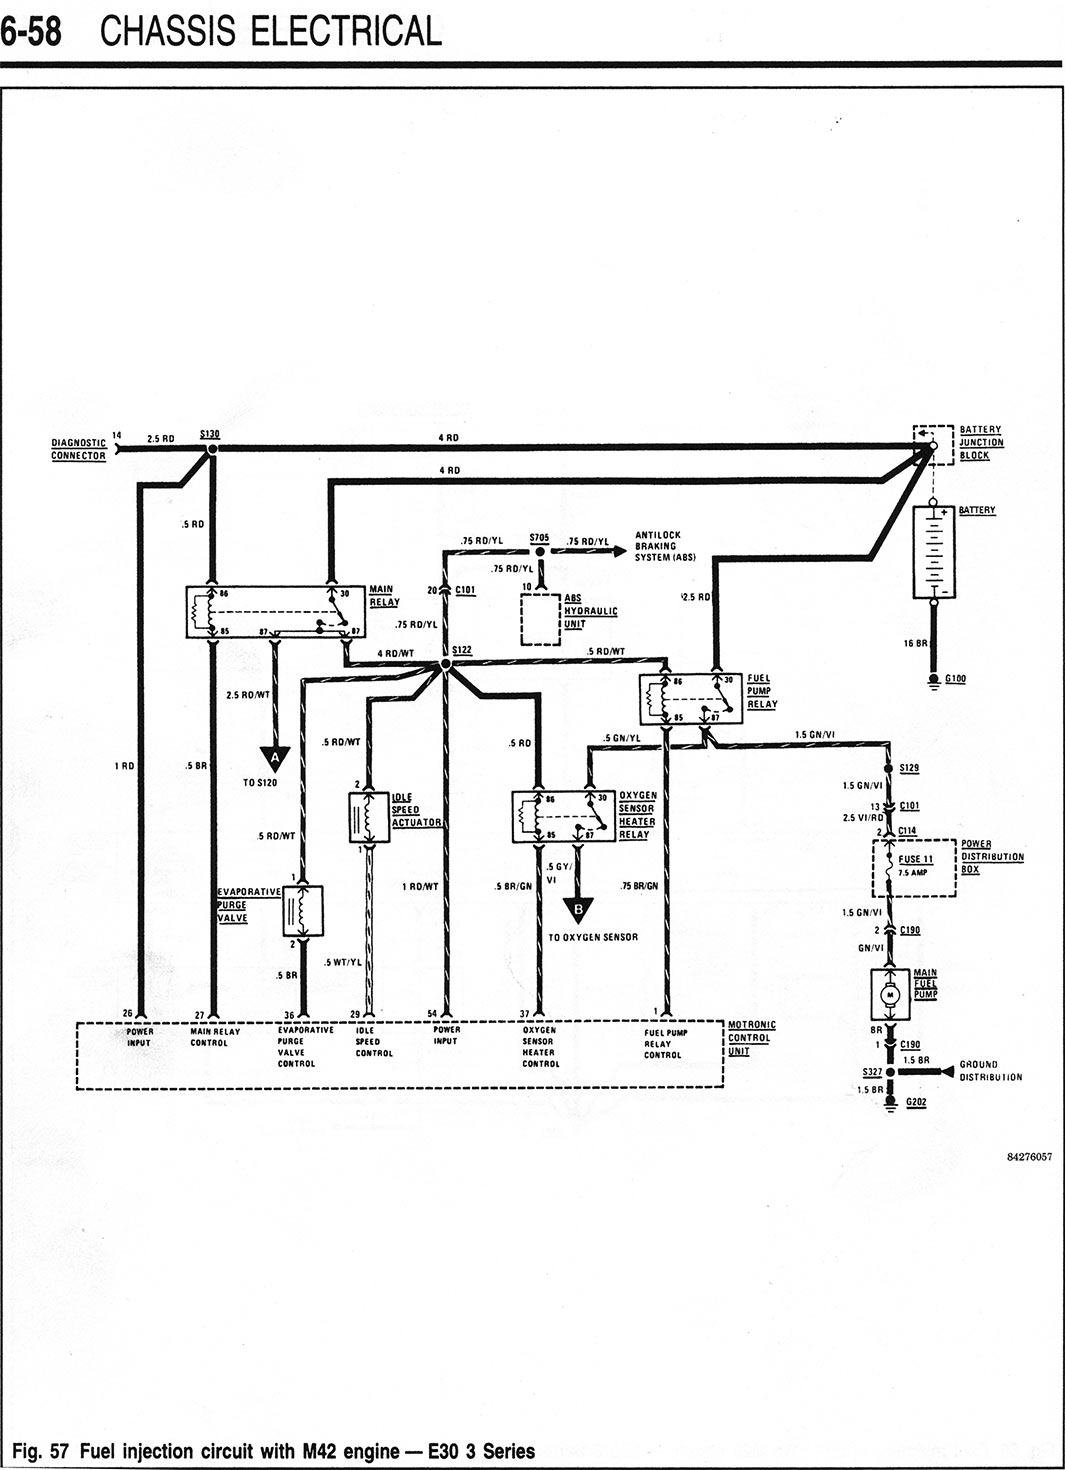 PG658 e30 wiring diagram e30 amplifier wiring diagram \u2022 wiring diagrams BMW E46 M3 Black at aneh.co